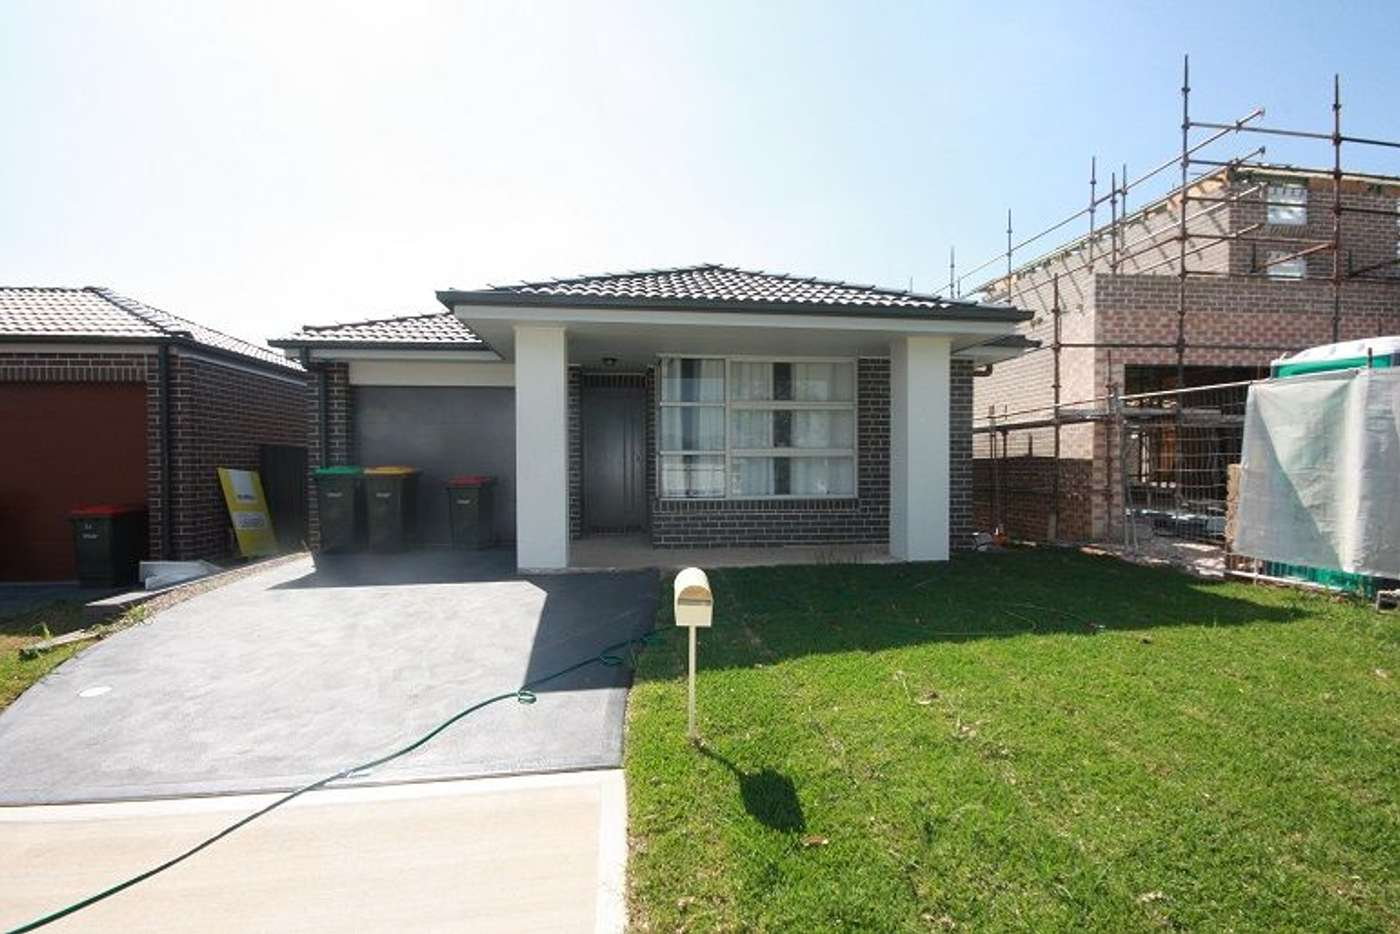 Main view of Homely house listing, 23 Fanflower Avenue, Denham Court NSW 2565